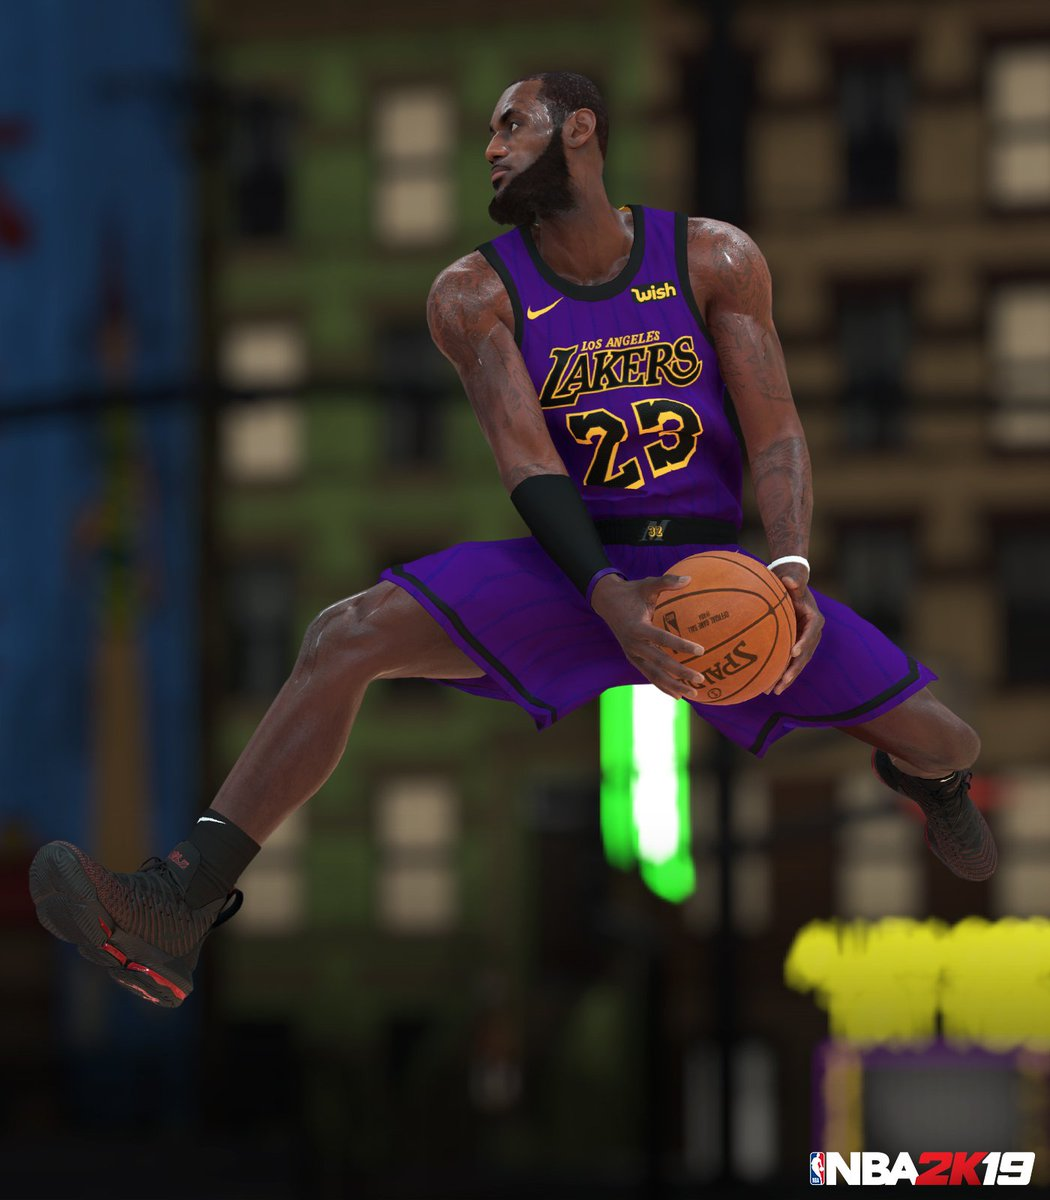 Head to the NBA store to cop  KingJames City Jersey now! Also available are  NBA Players of the Week  AntDavis23 s City Jersey and  NikolaVucevic s  Statement ... 16e244c91